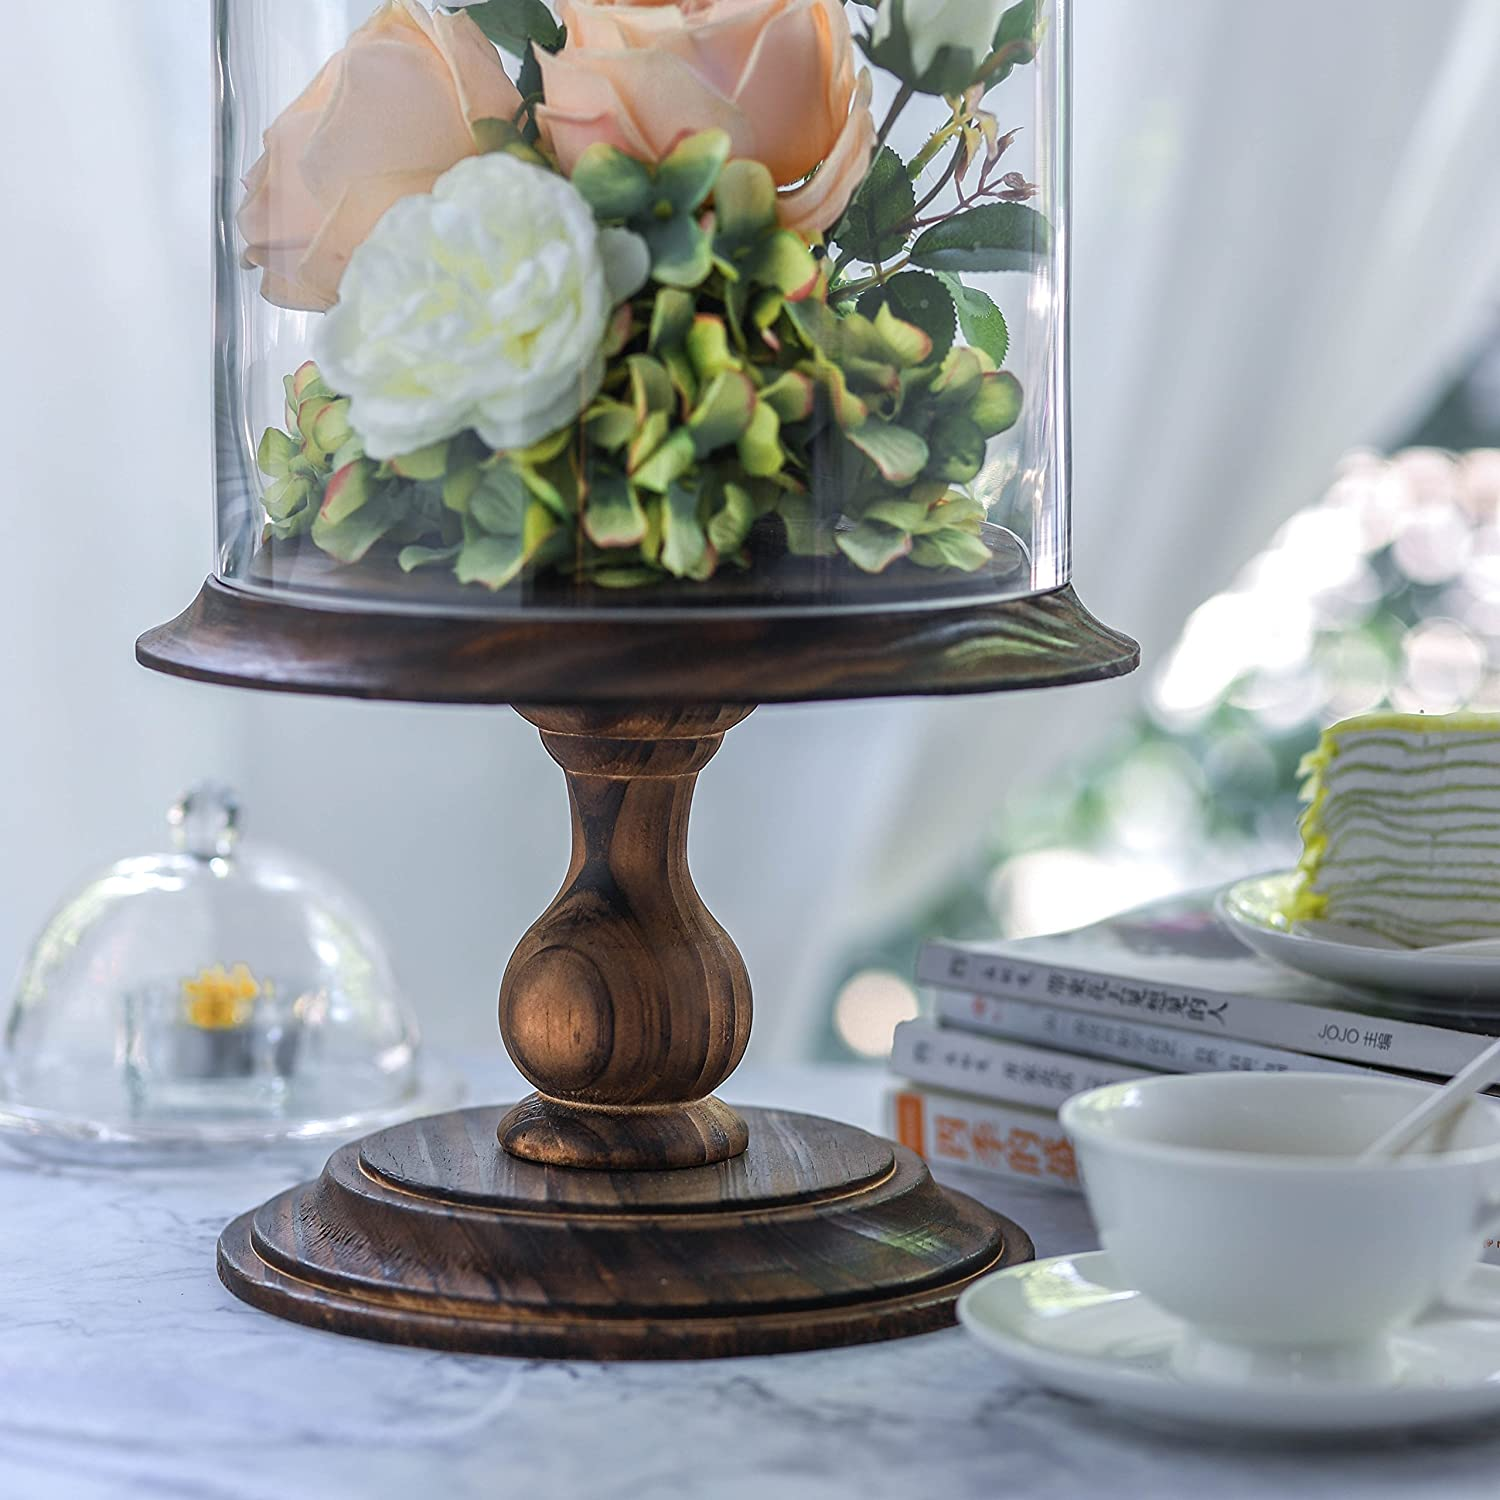 Glass Dome with Wood Base Large Pedestal Clear Display Cloche Bell Jar Vase Round for Necklace Rose Flowers Plants Home Table Decoration Terrarium Wedding Centerpiece Birthday DIY Decor Gift NCYP